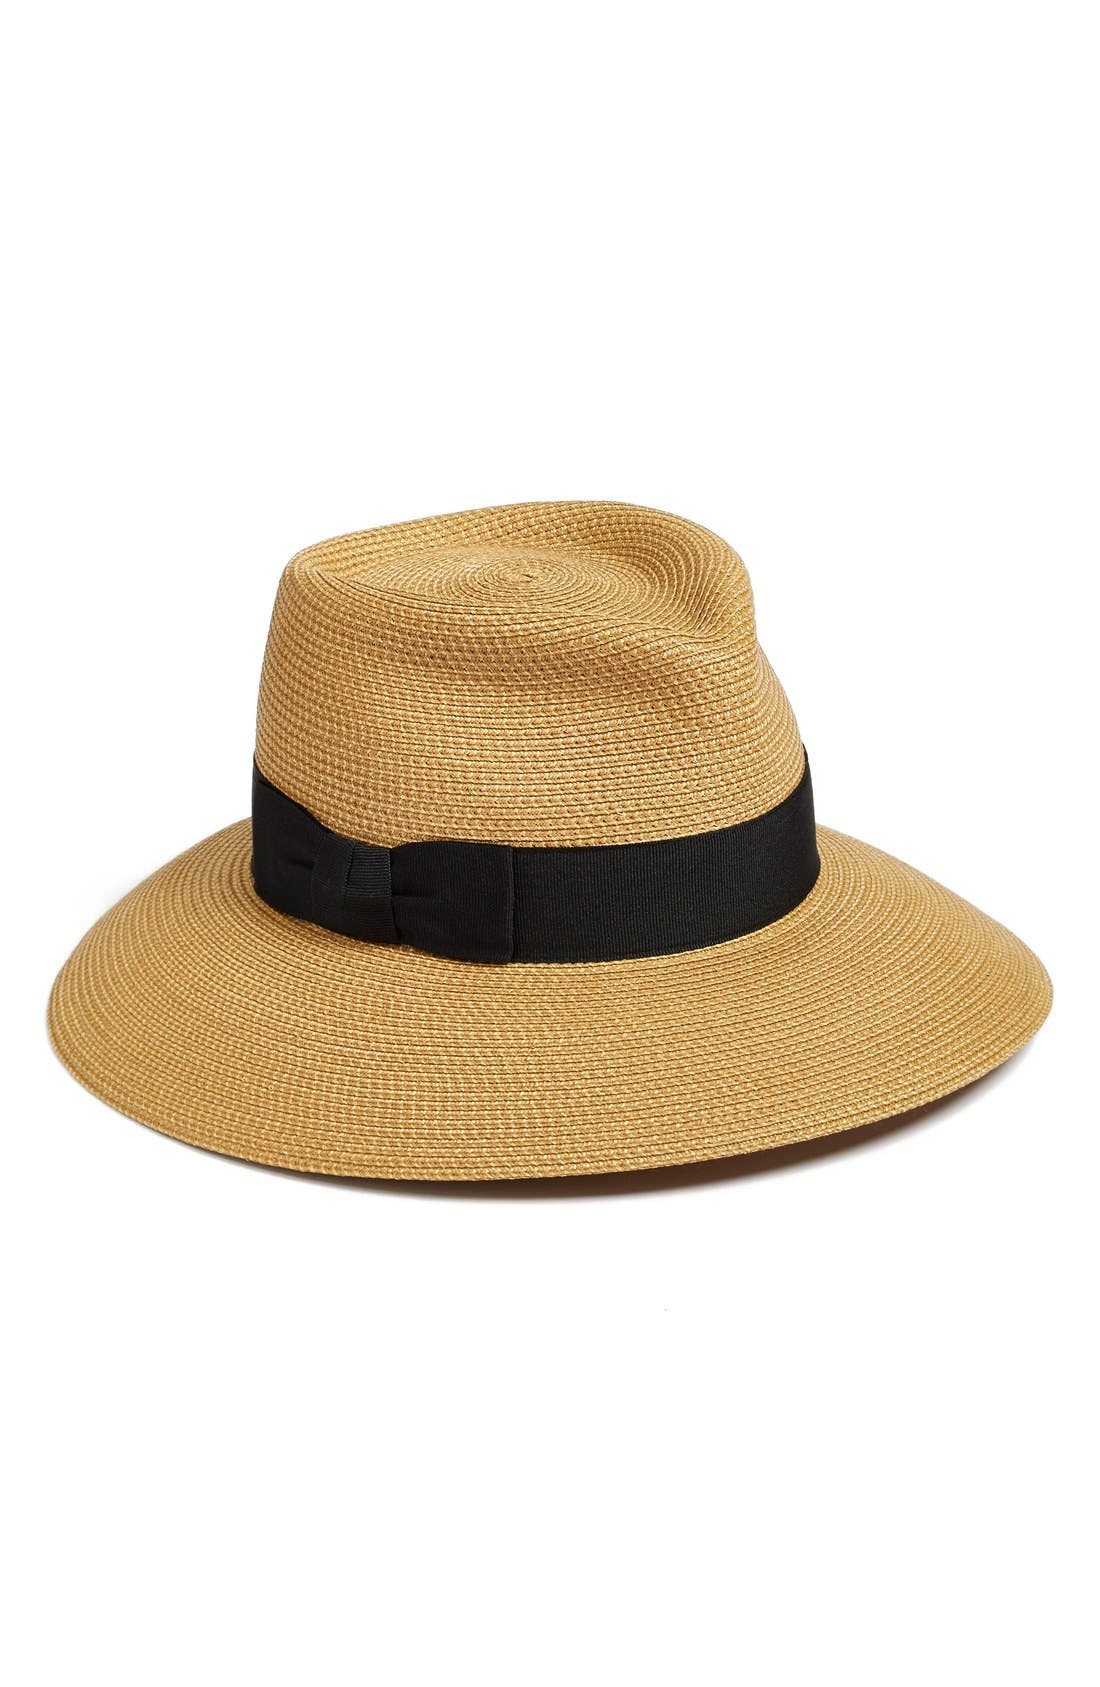 ERIC JAVITS, 'Phoenix' Packable Fedora Sun Hat, Main thumbnail 1, color, NATURAL/ BLACK